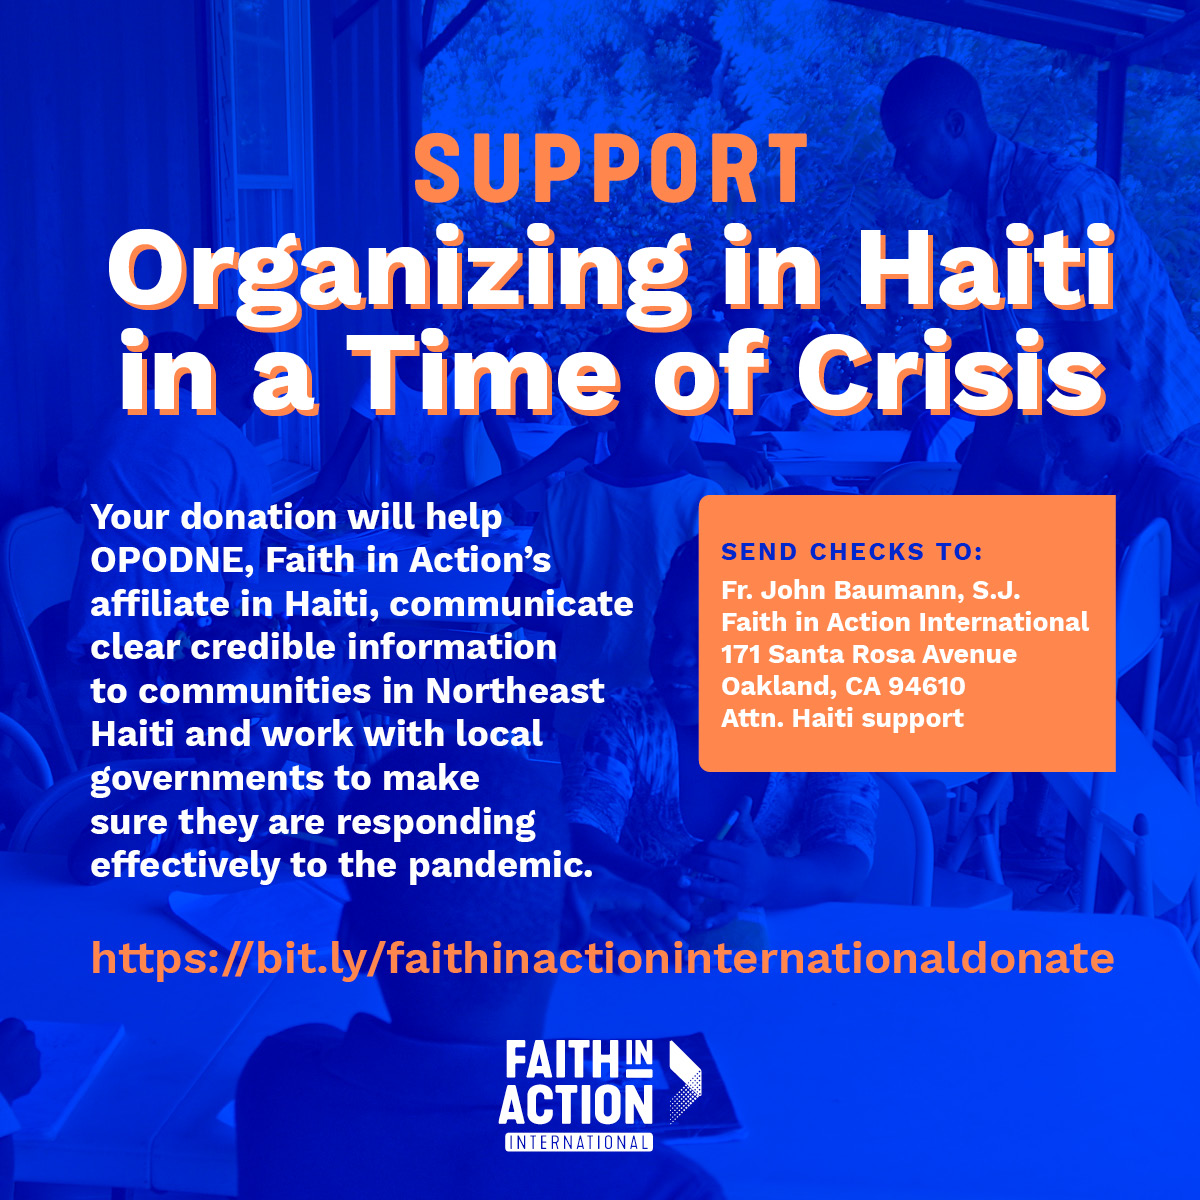 Support Organizing In A Time Of Crisis In Haiti